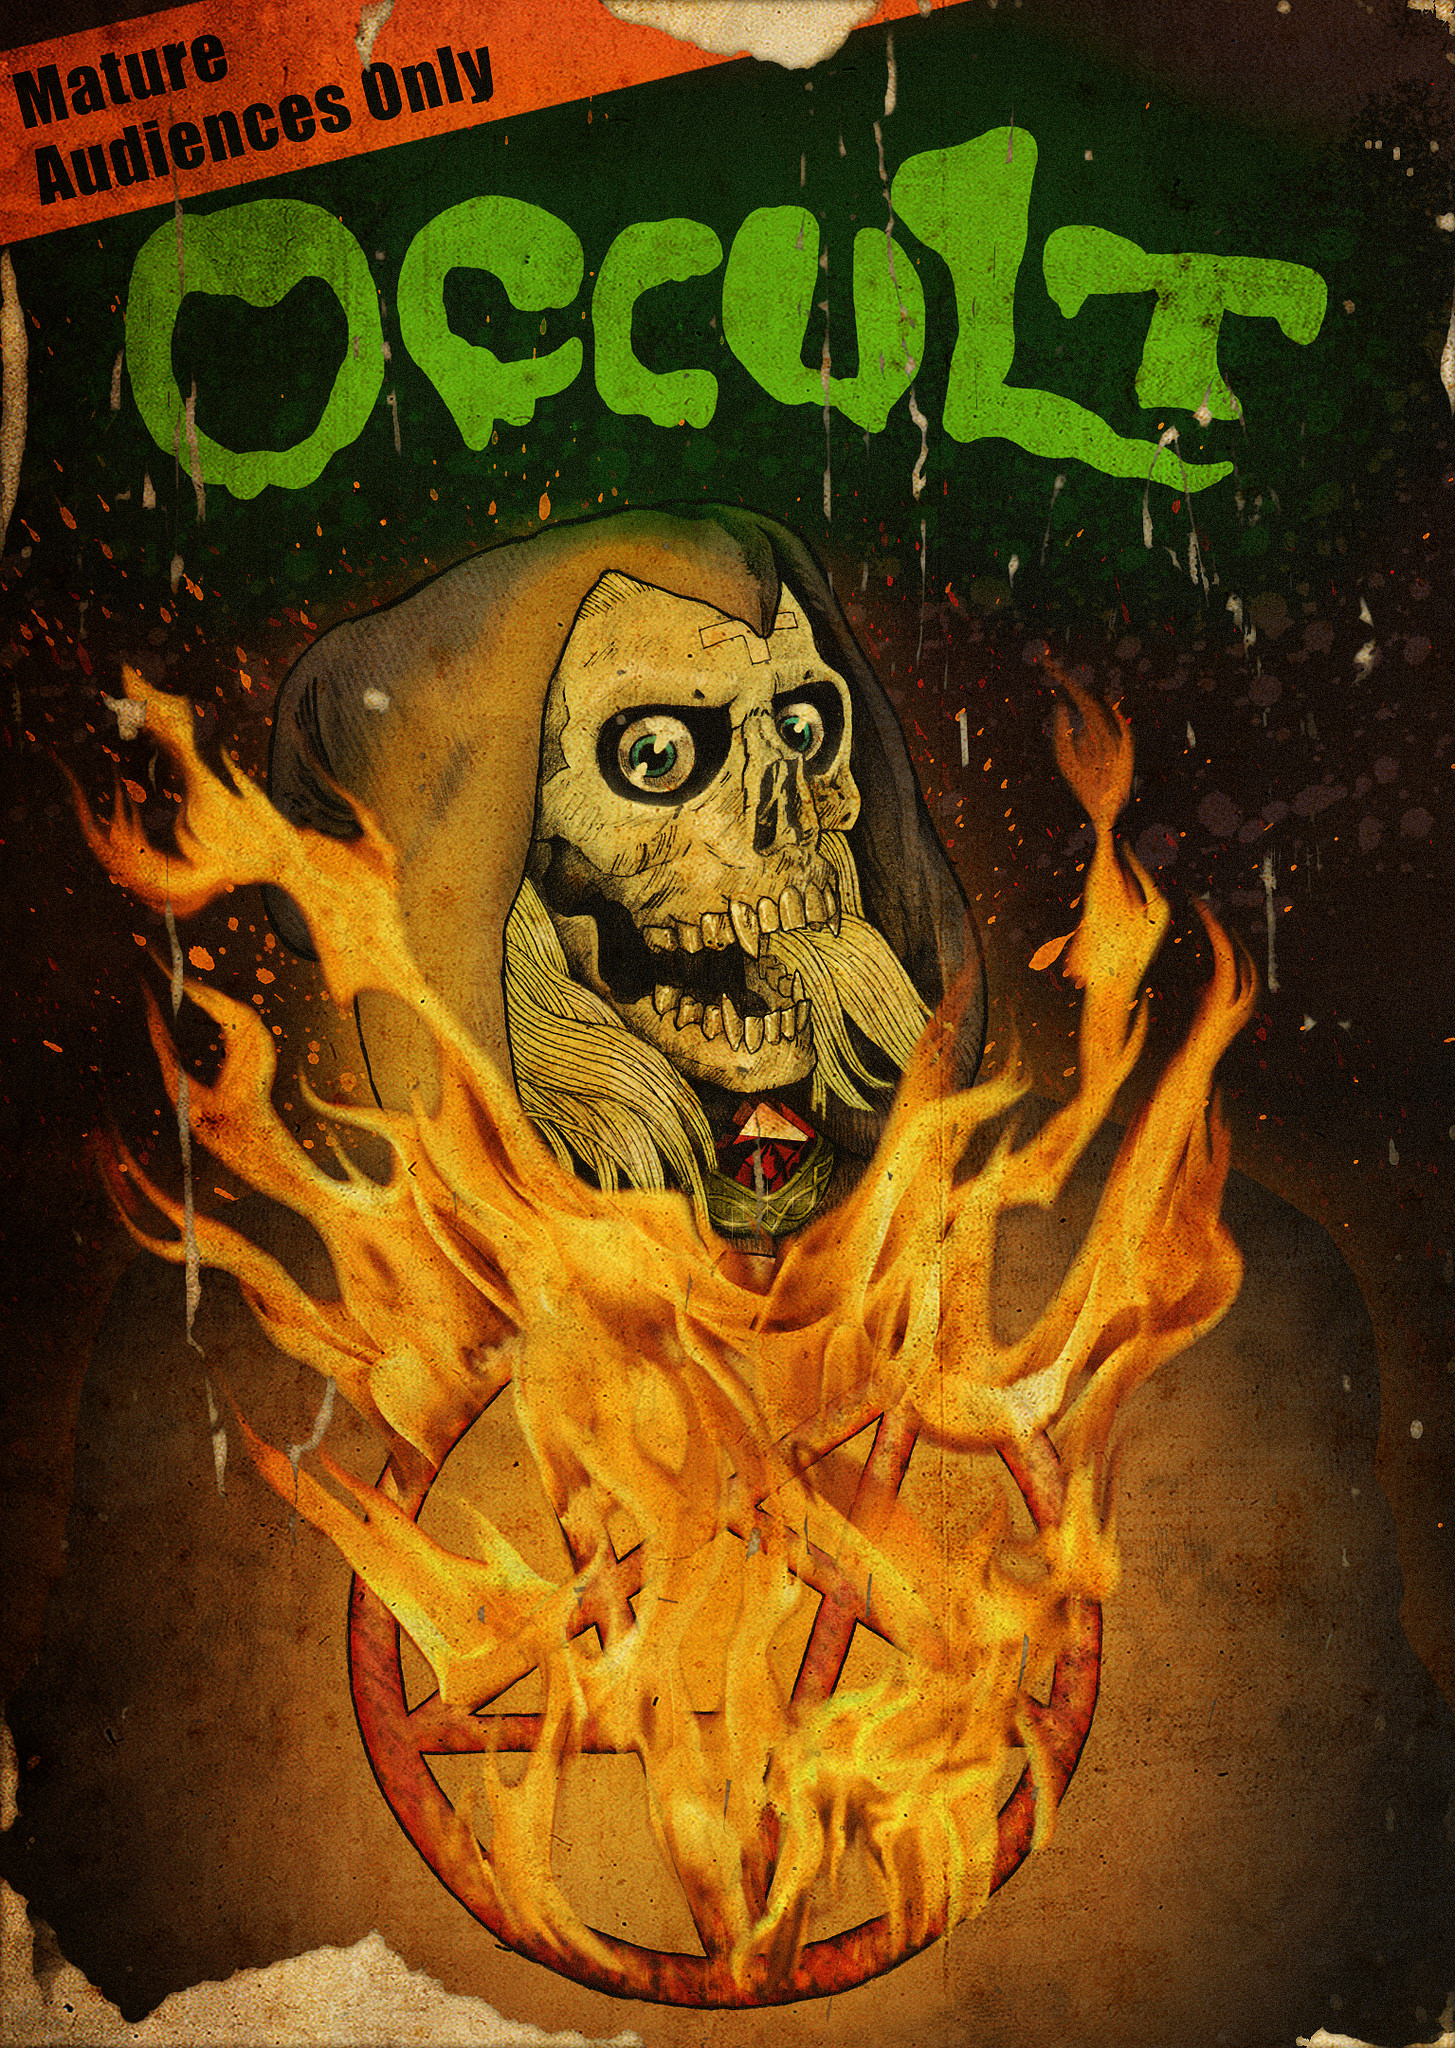 DVD cover for the film  Occult .